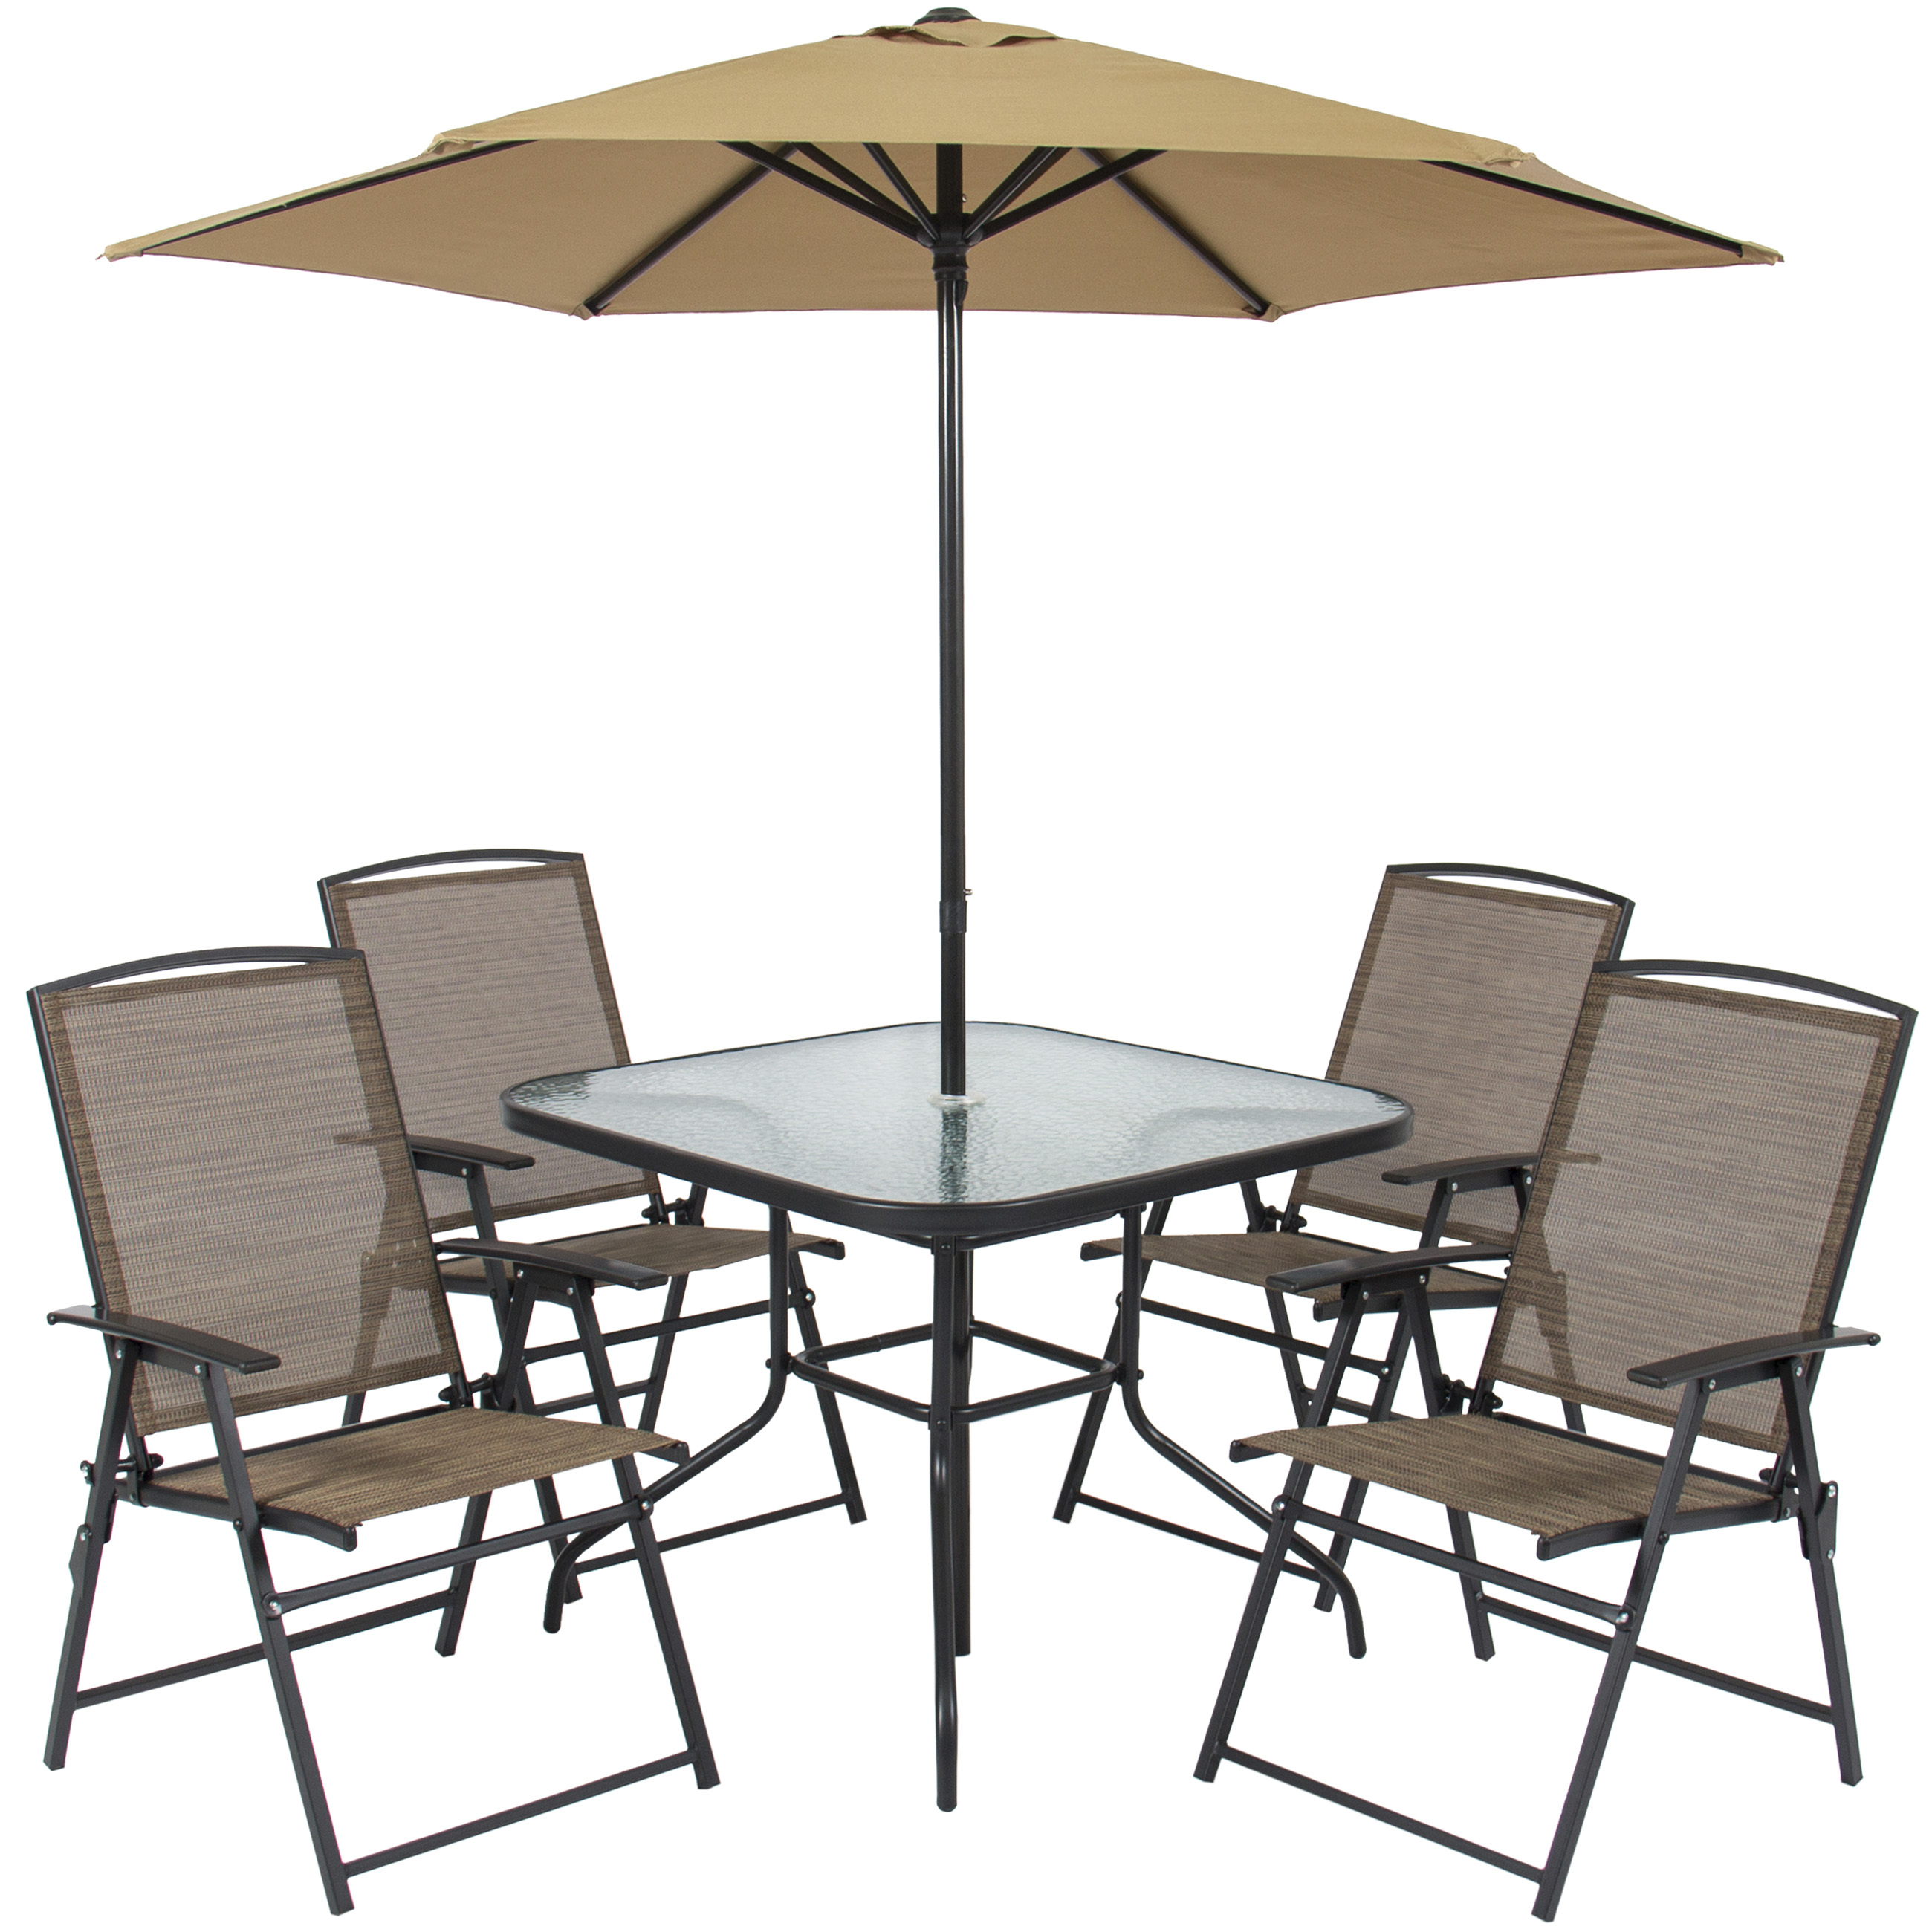 stand standing patio offset small umbrellas umbrella heavy prices sale base table tiki in rectangular free pool home market on for garden outdoor depot